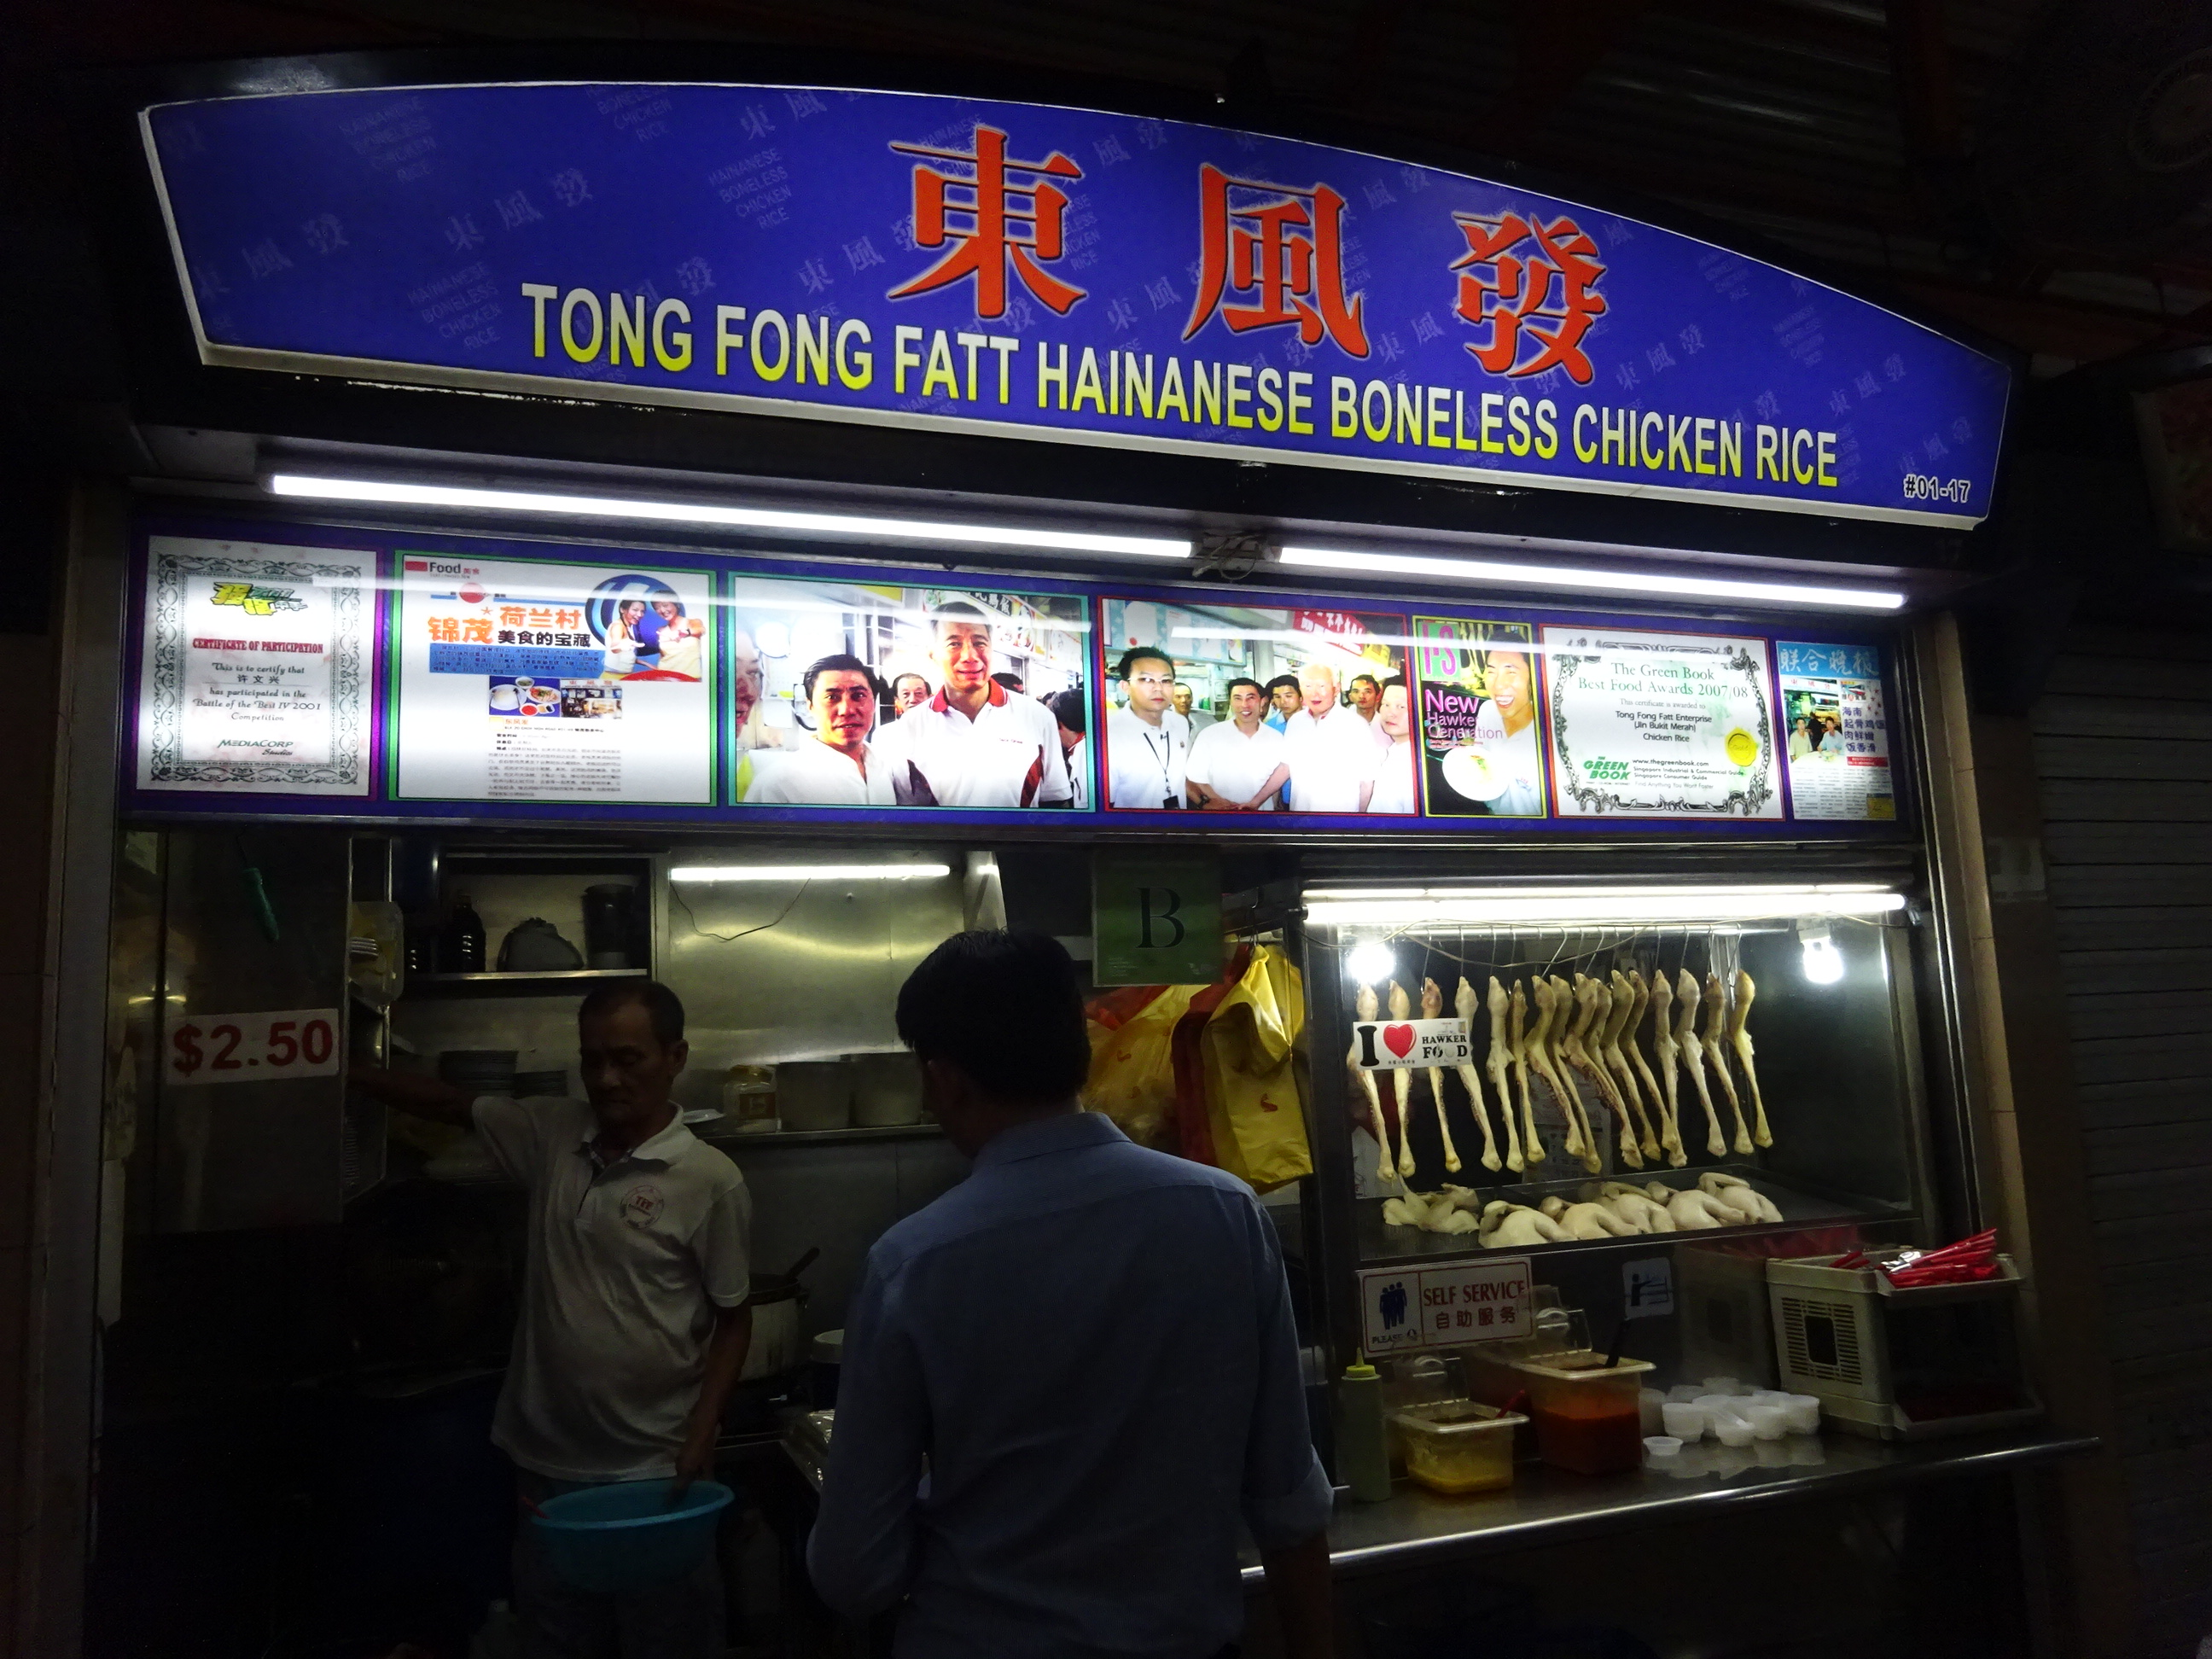 チキンライスのお店Tong Fong Fatt Hainanese Boneless Chicken Rice